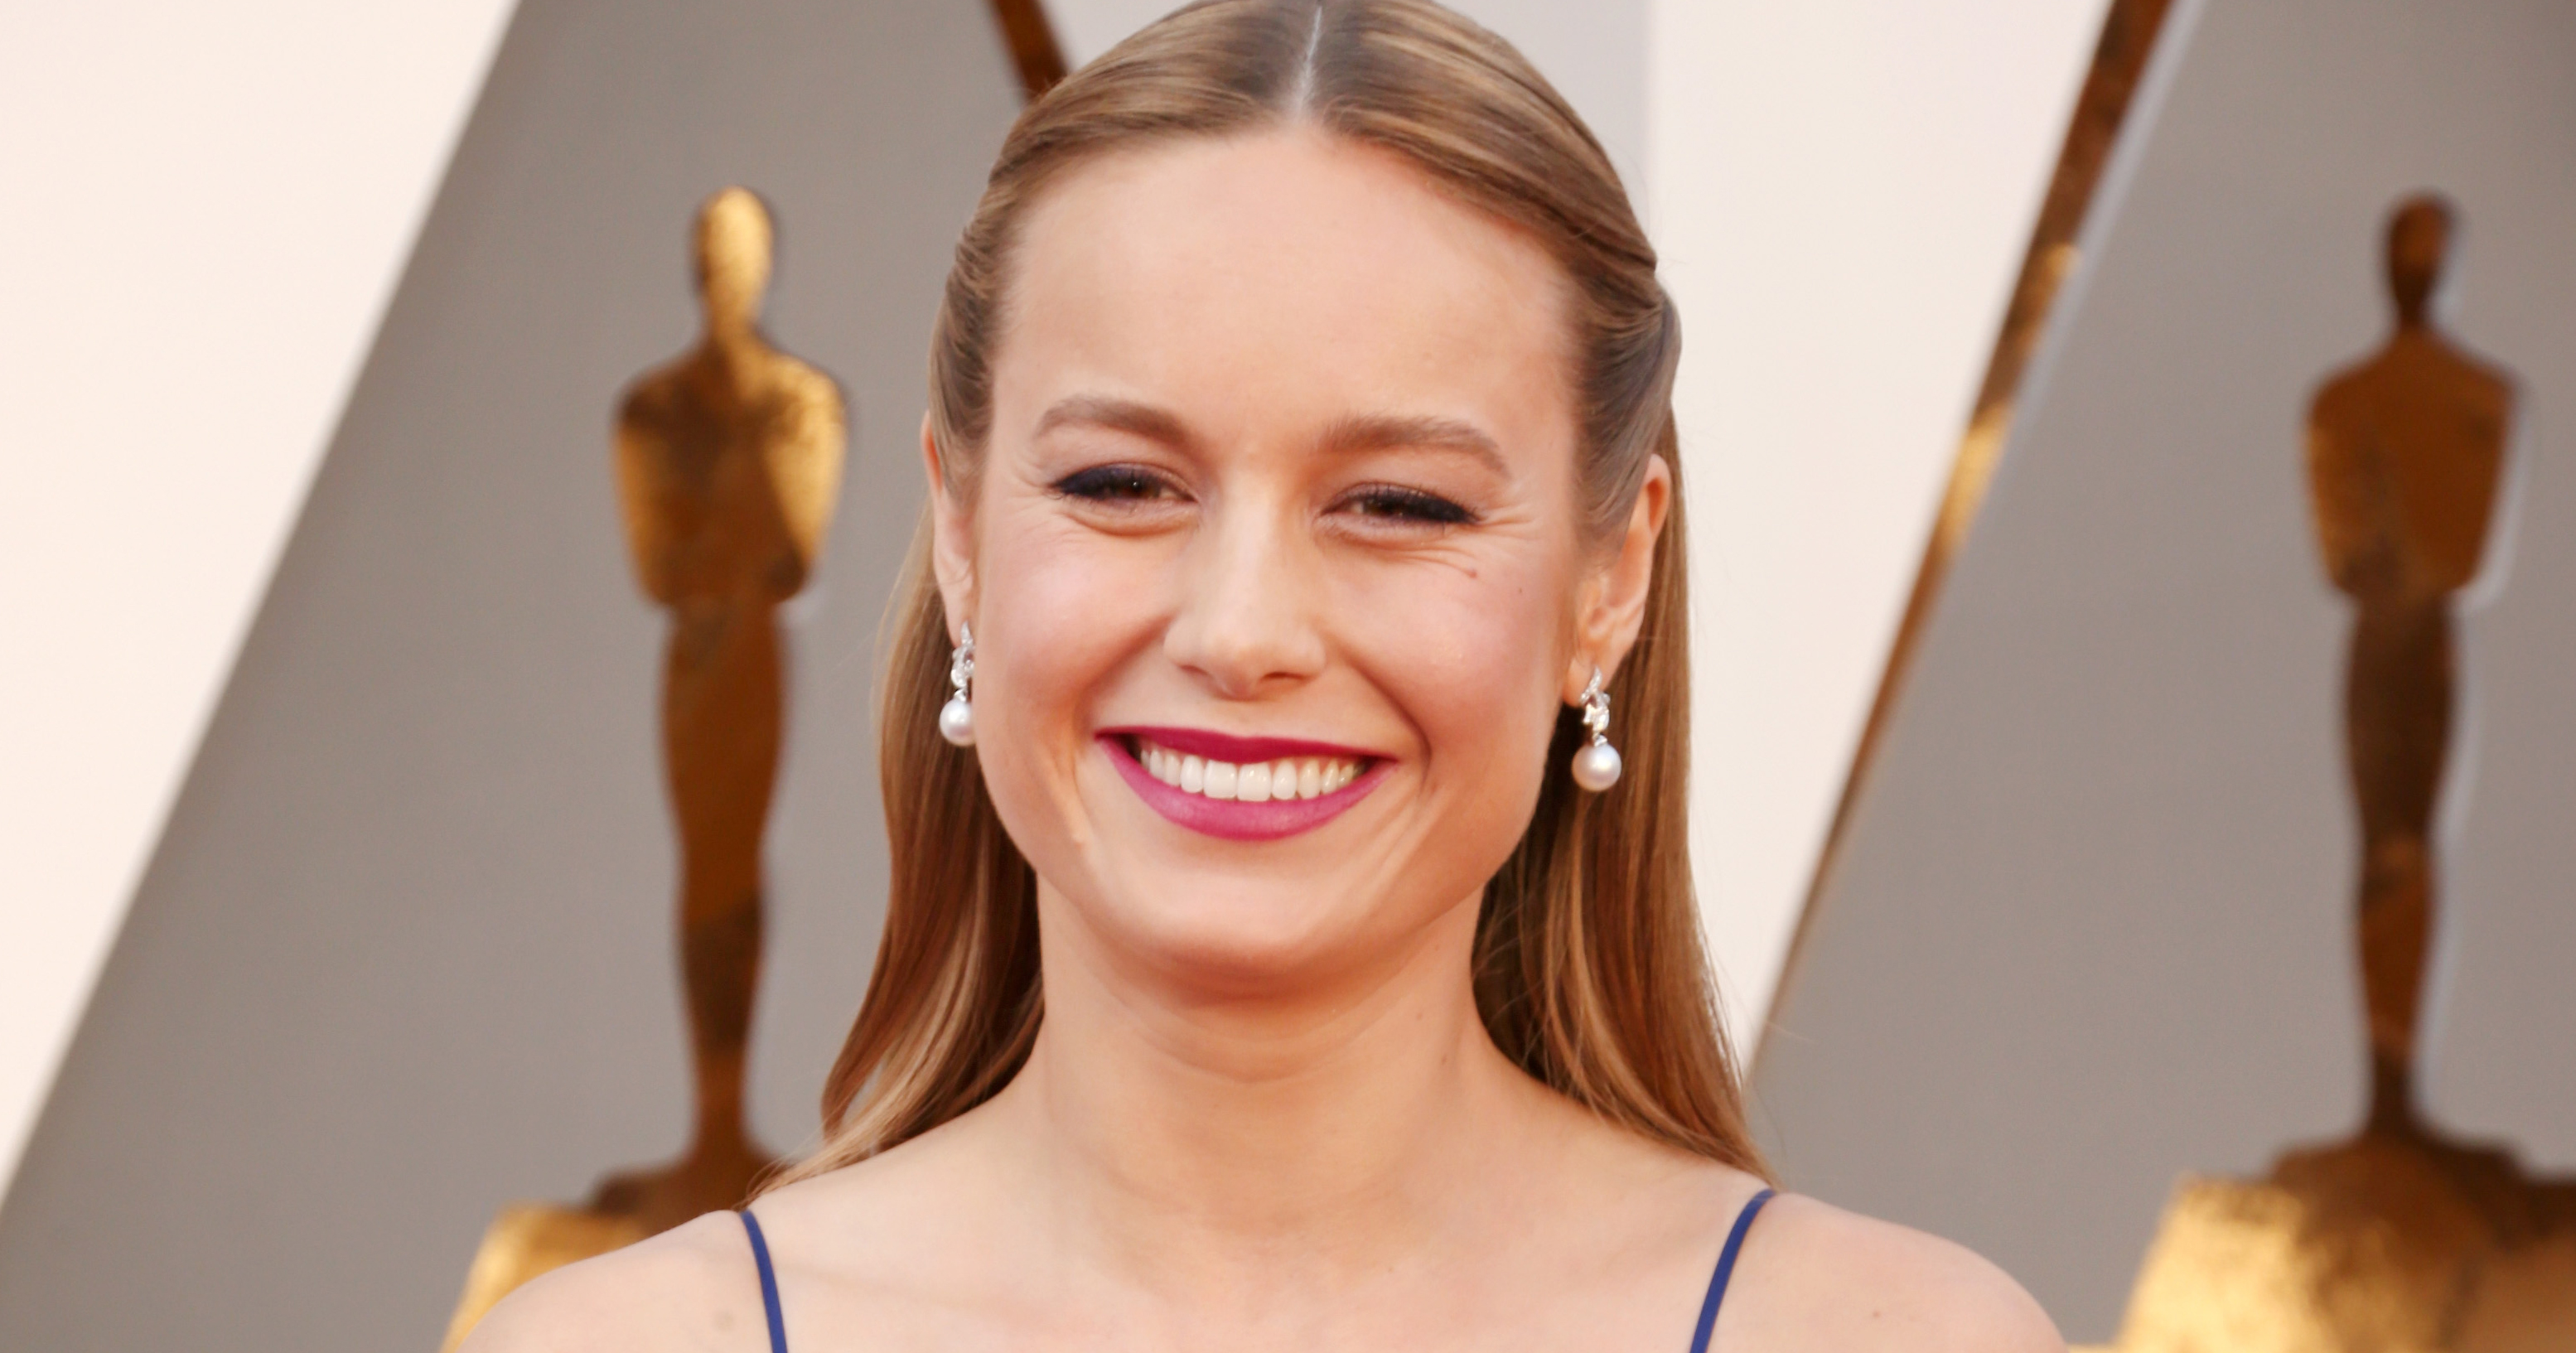 Brie Larson attends the 88th Annual Academy Awards on Feb. 28, 2016 in Hollywood, Calif.